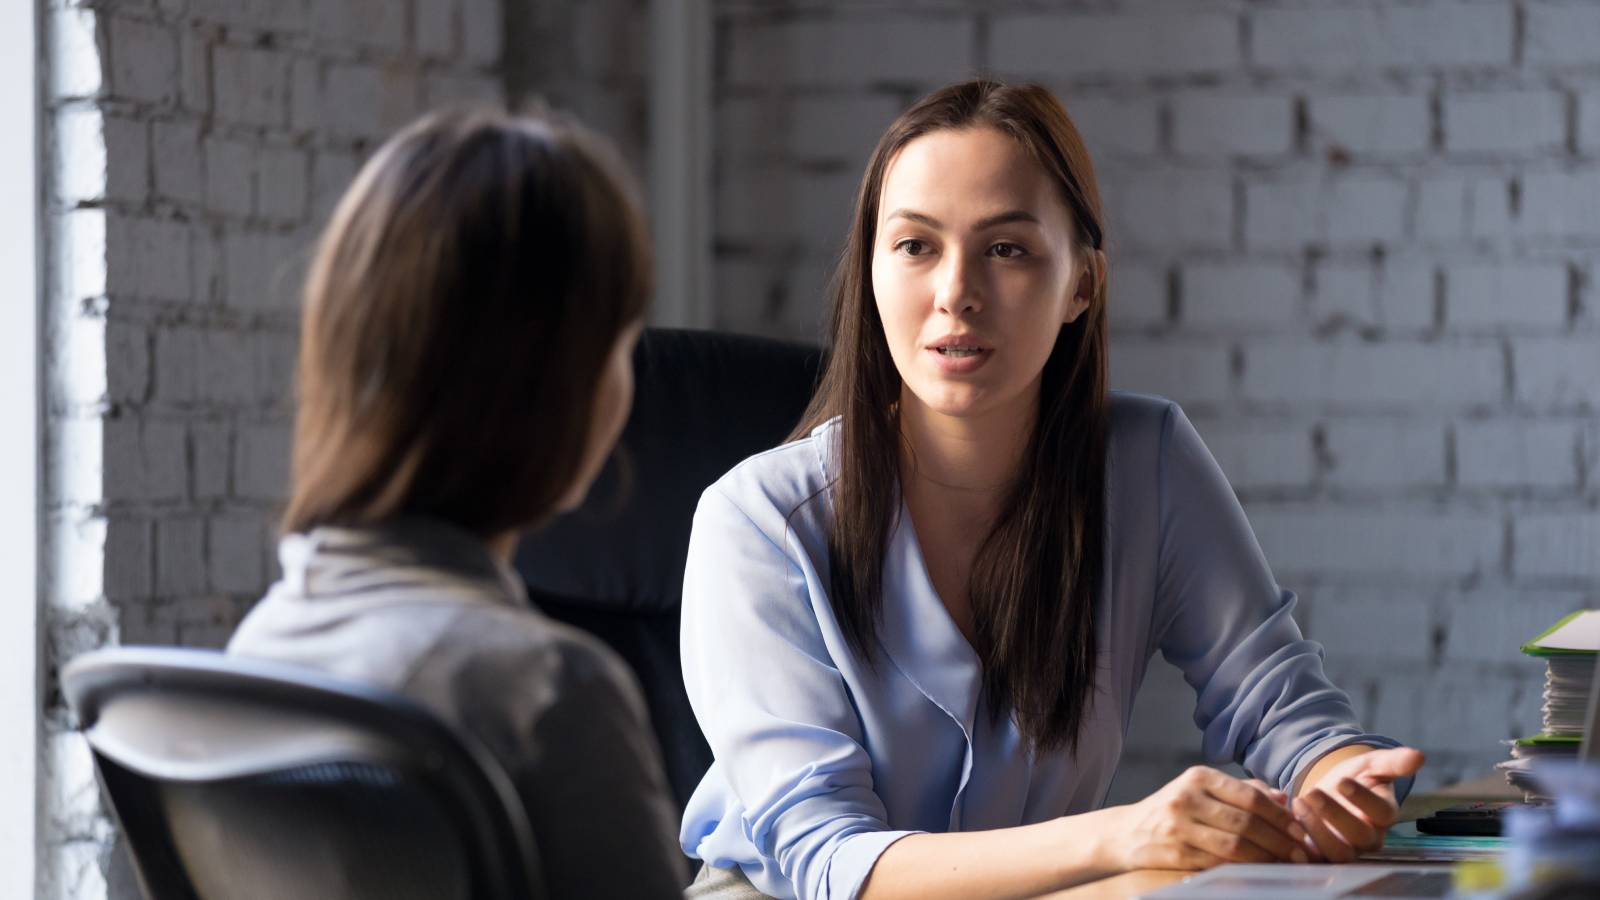 The Importance Of Financial Planning For Women